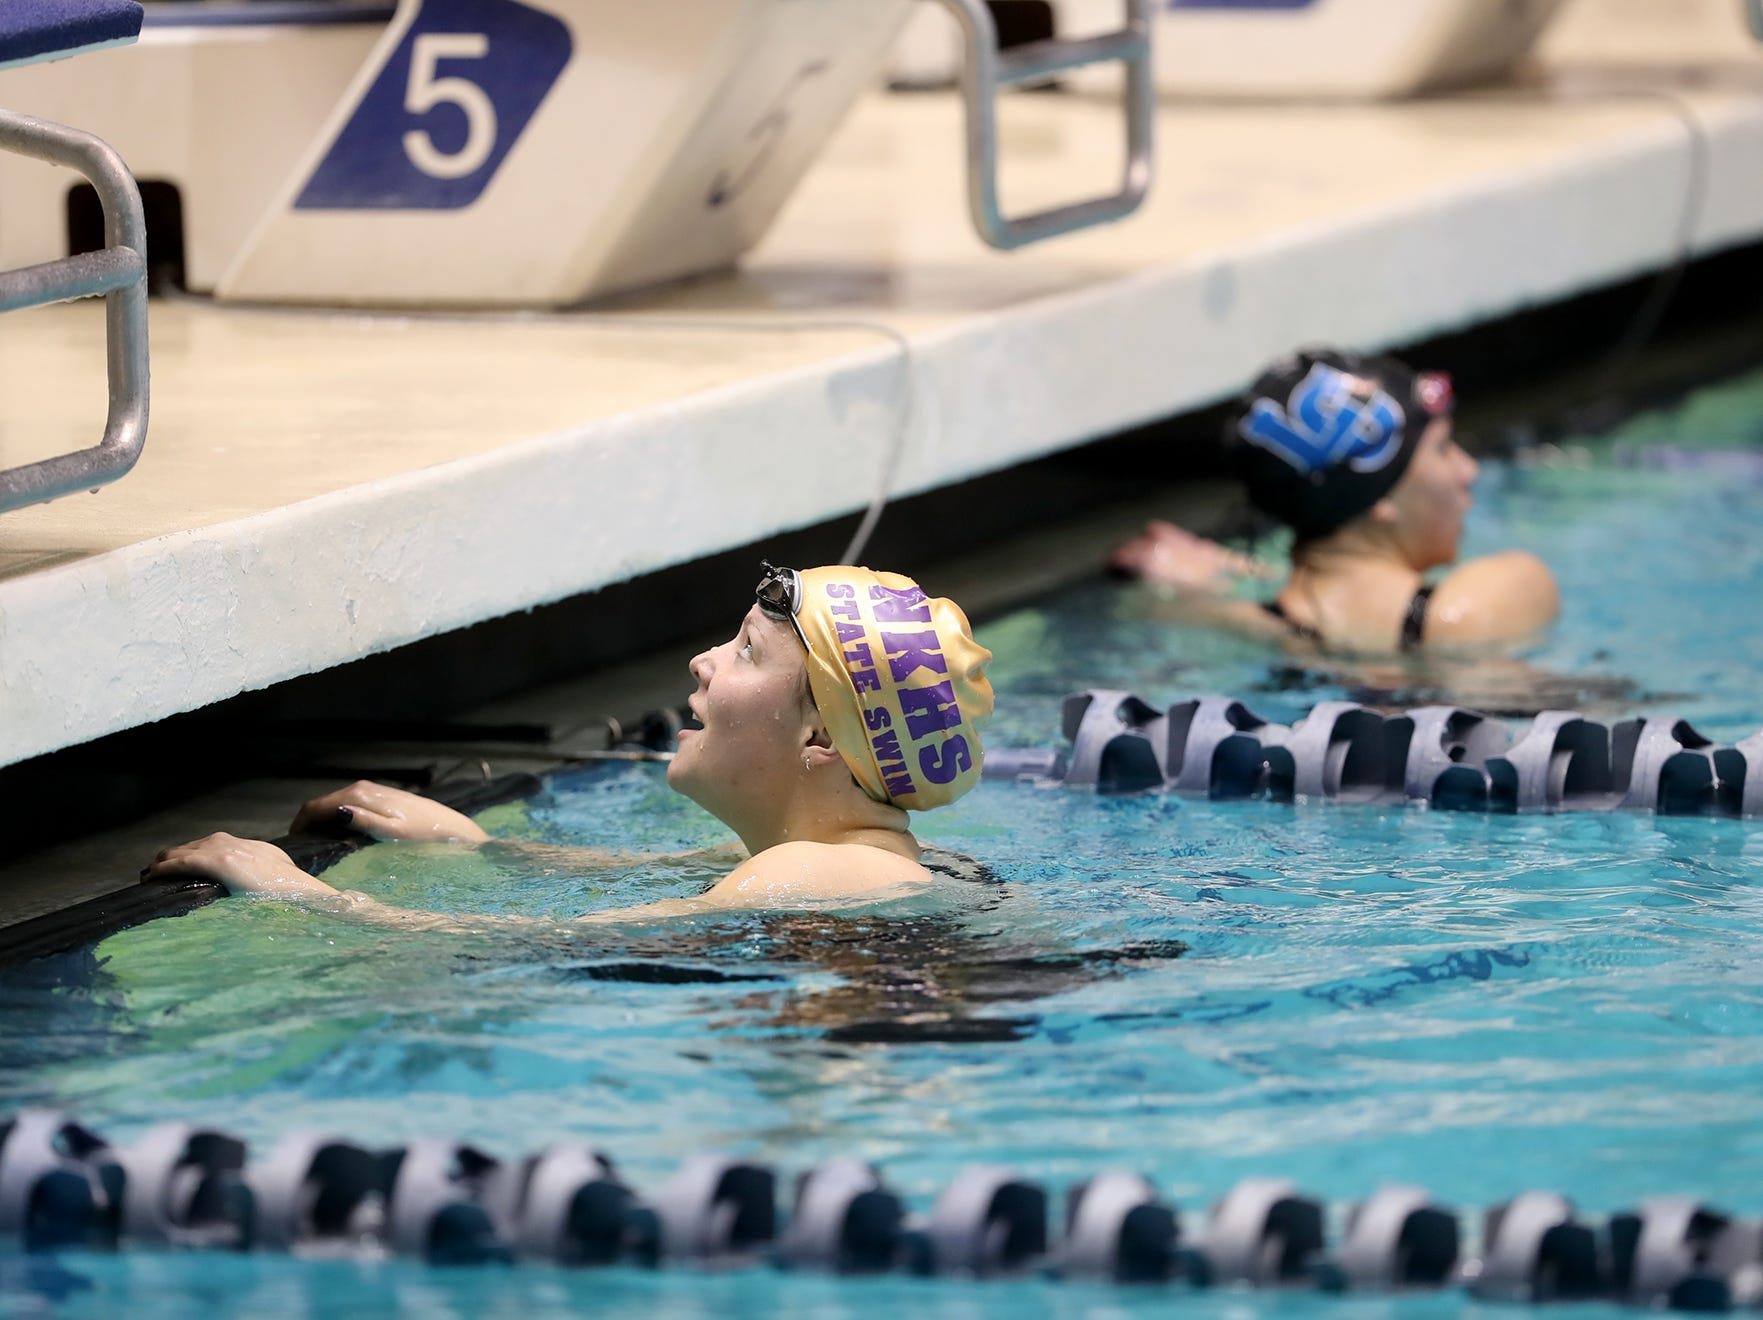 The North Kitsap Girls swim team won the team title at the 2018 2A Girls State Swim & Diving Championships on Saturday, November, 10 , 2018 at the King County Aquatics Center, in Federal Way. North swimmer Eleanor Beers looks up and smiles after winning the 50 yard freestyle.